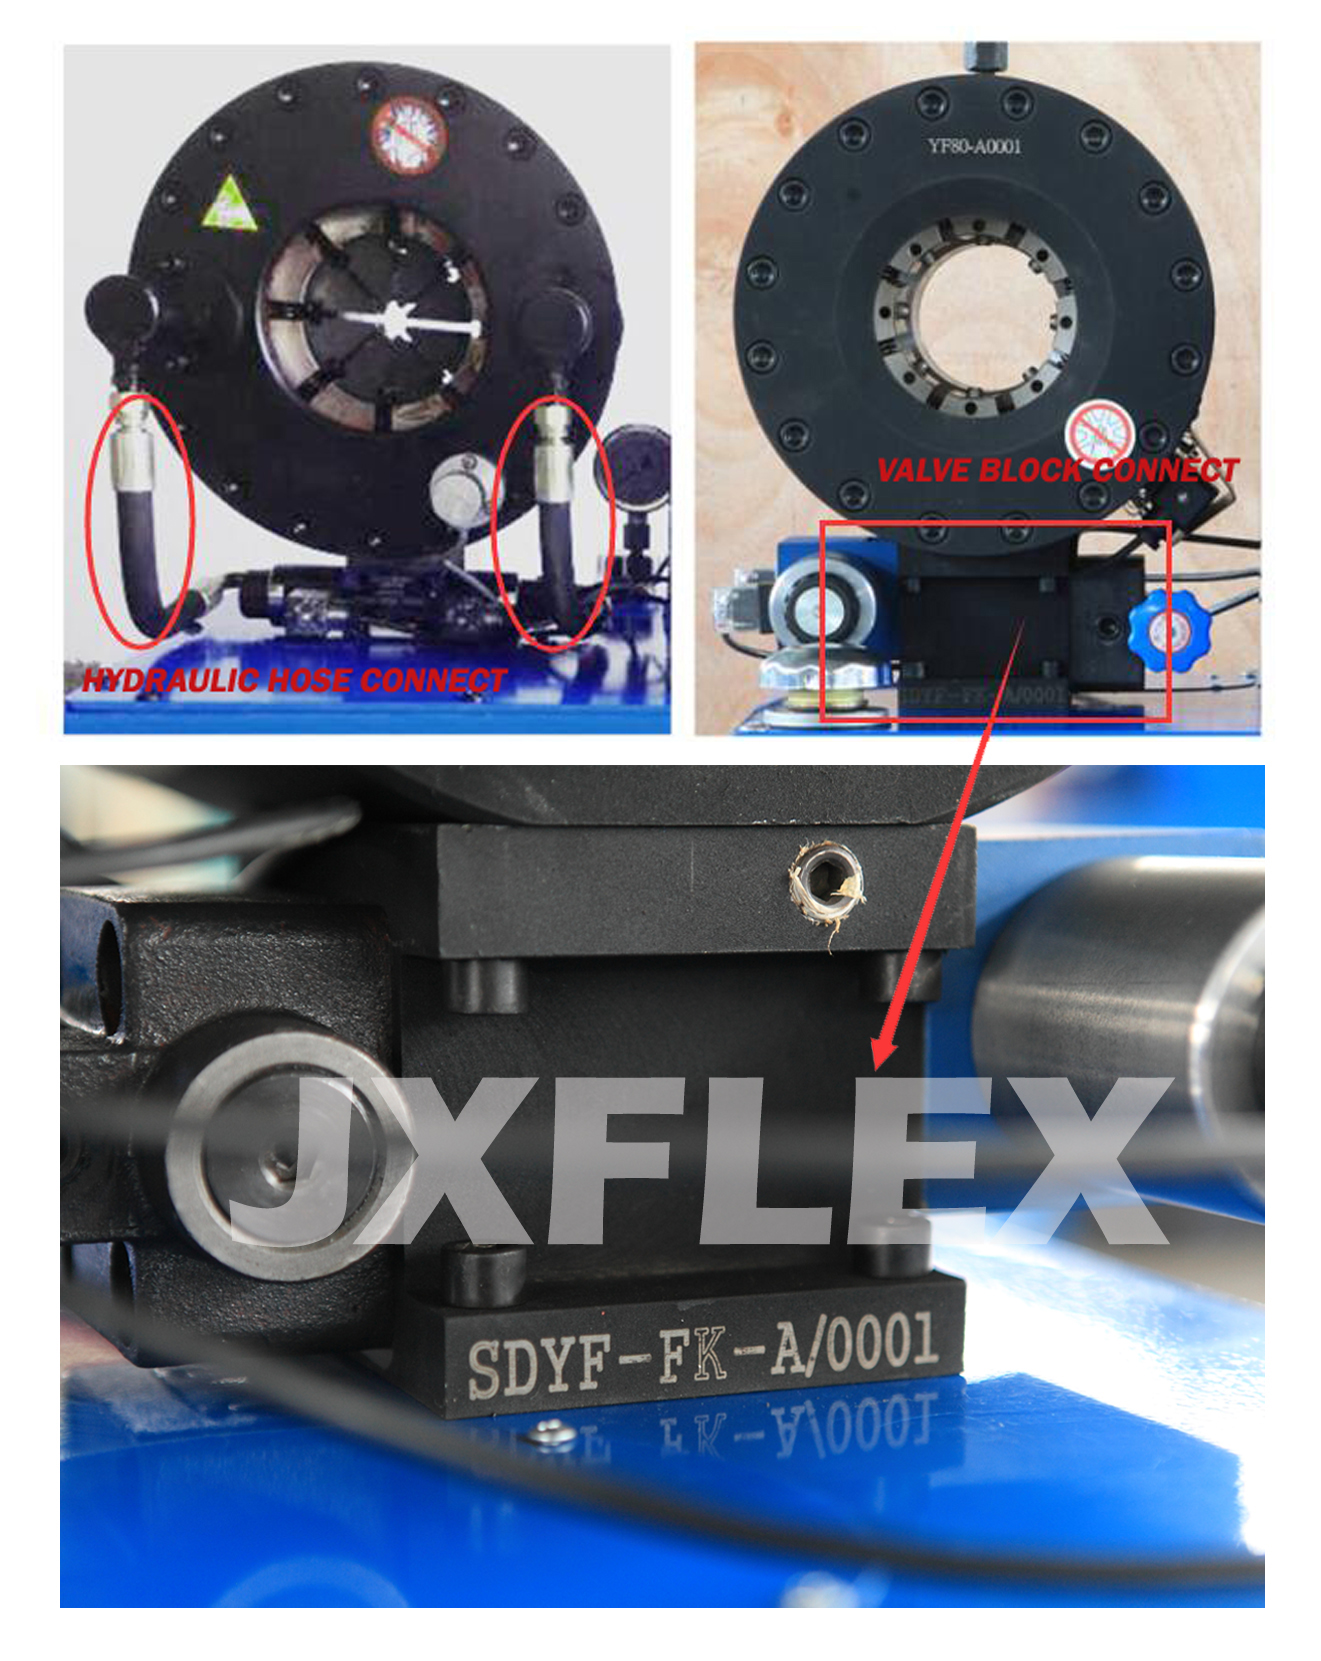 HYDRAULIC CONNECT-JX